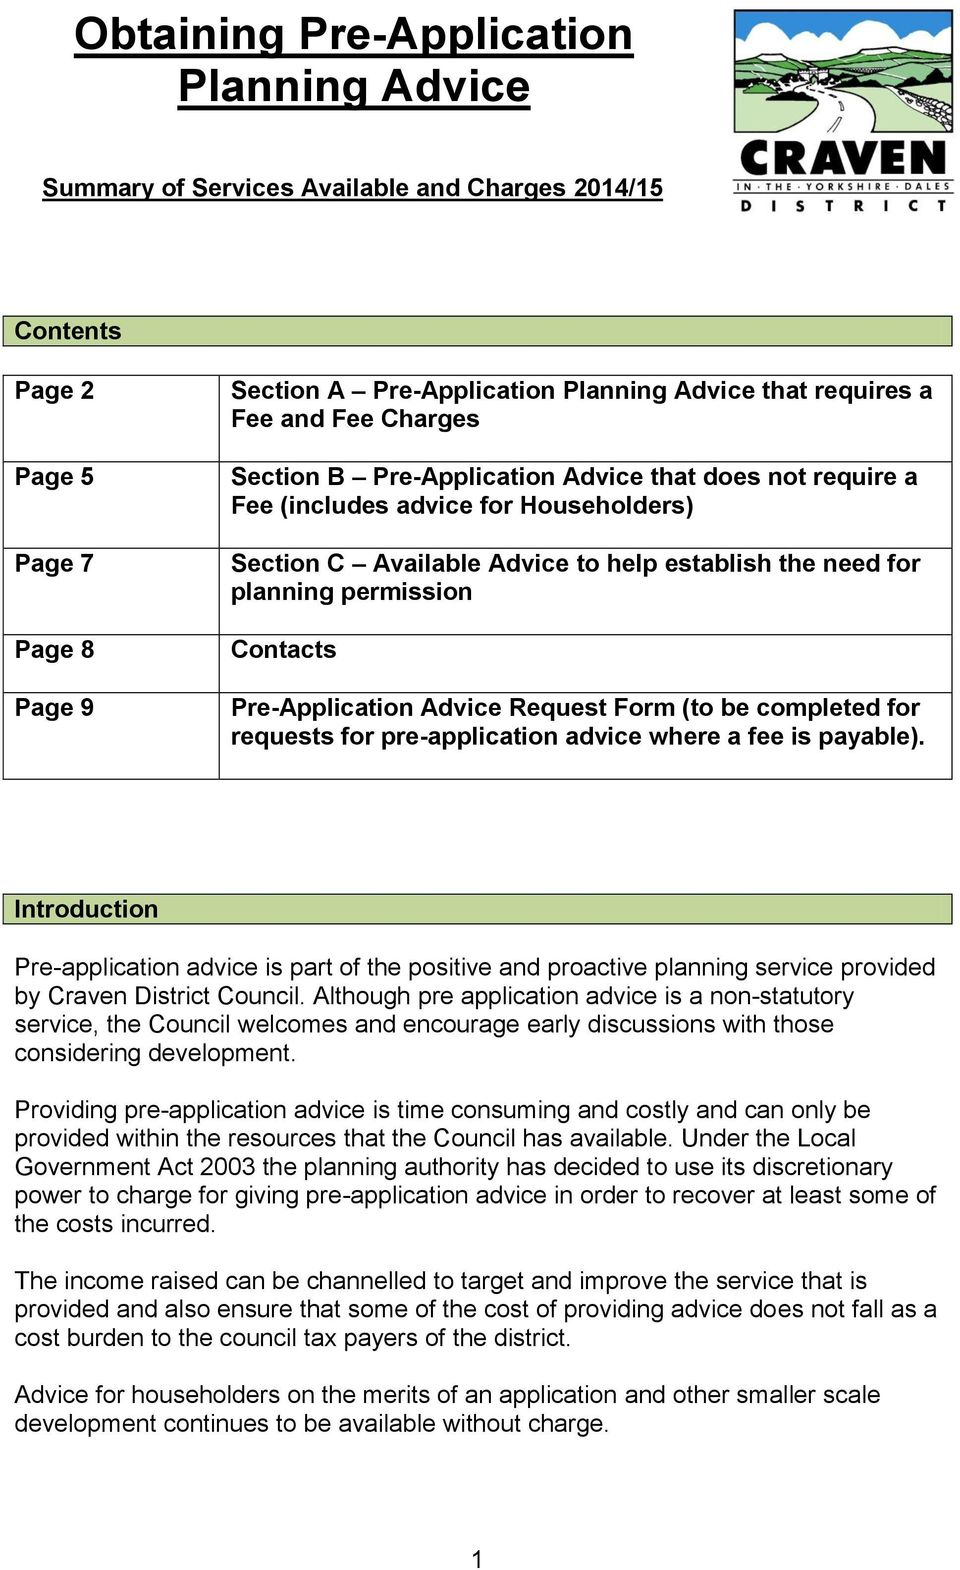 Pre-Application Advice Request Form (to be completed for requests for pre-application advice where a fee is payable).